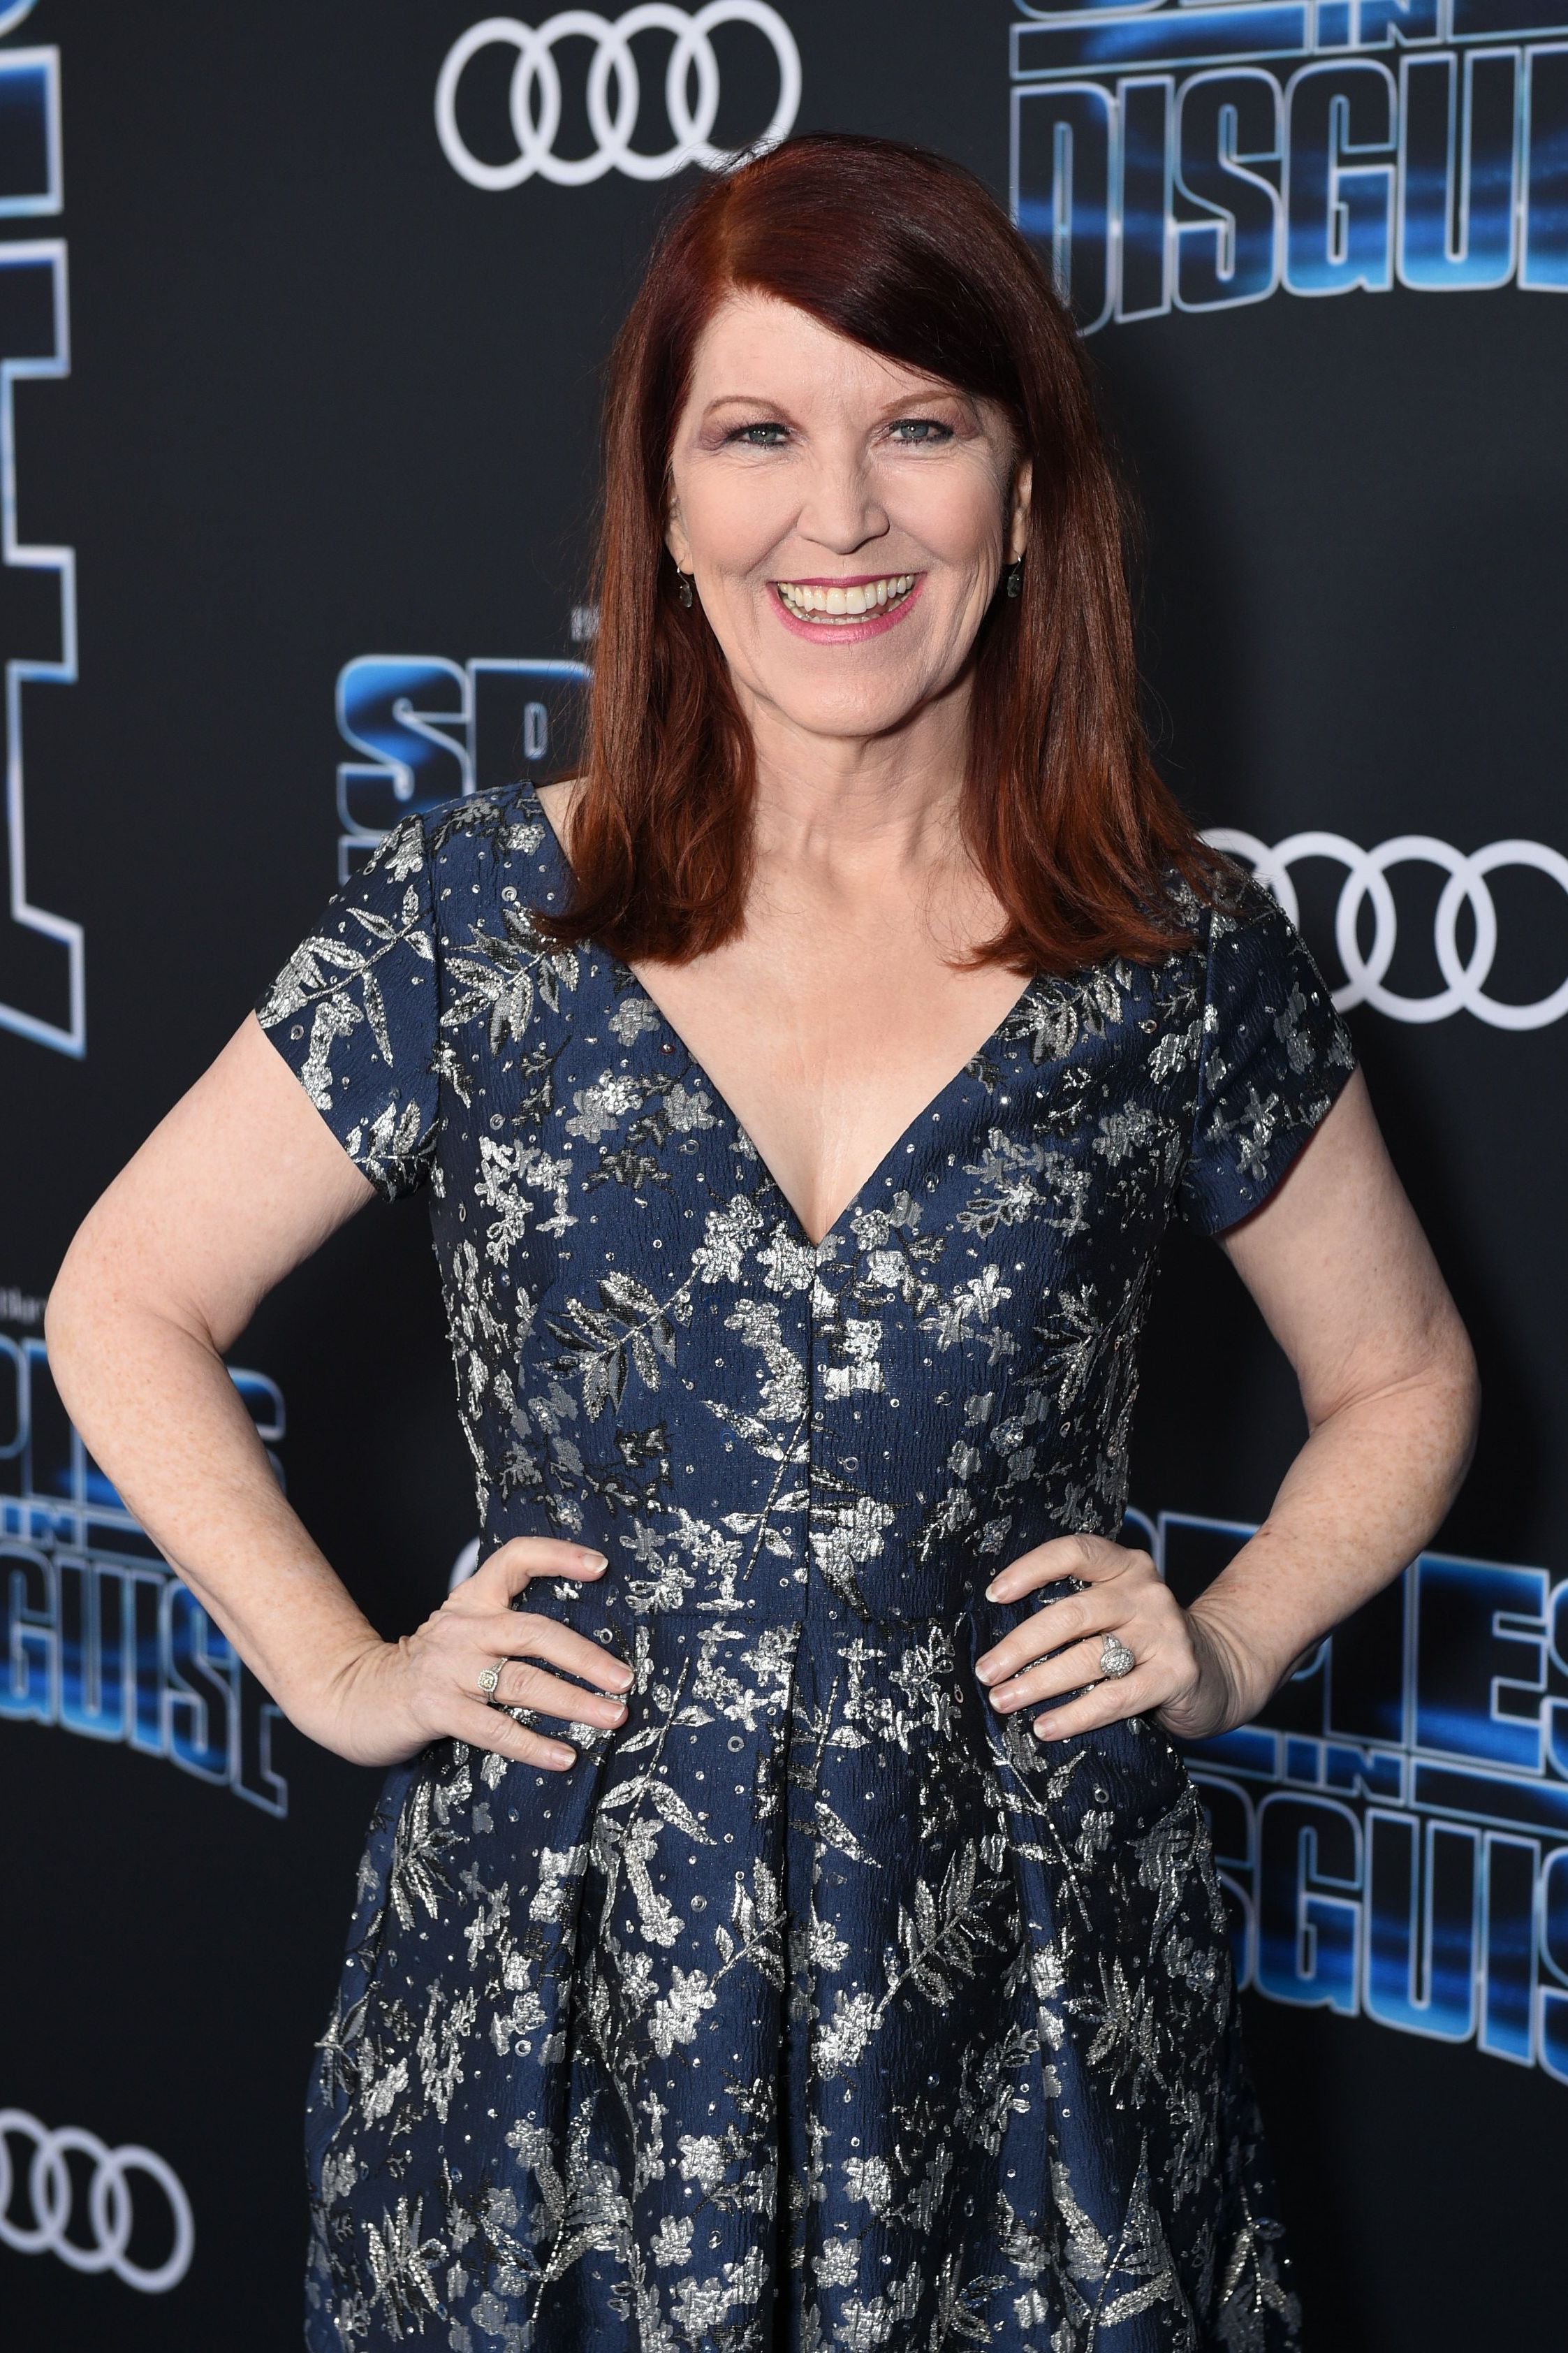 Kate Flannery Reveals She Lost Close to 20 Pounds on 'DWTS': 'It's Been Such a Gift'